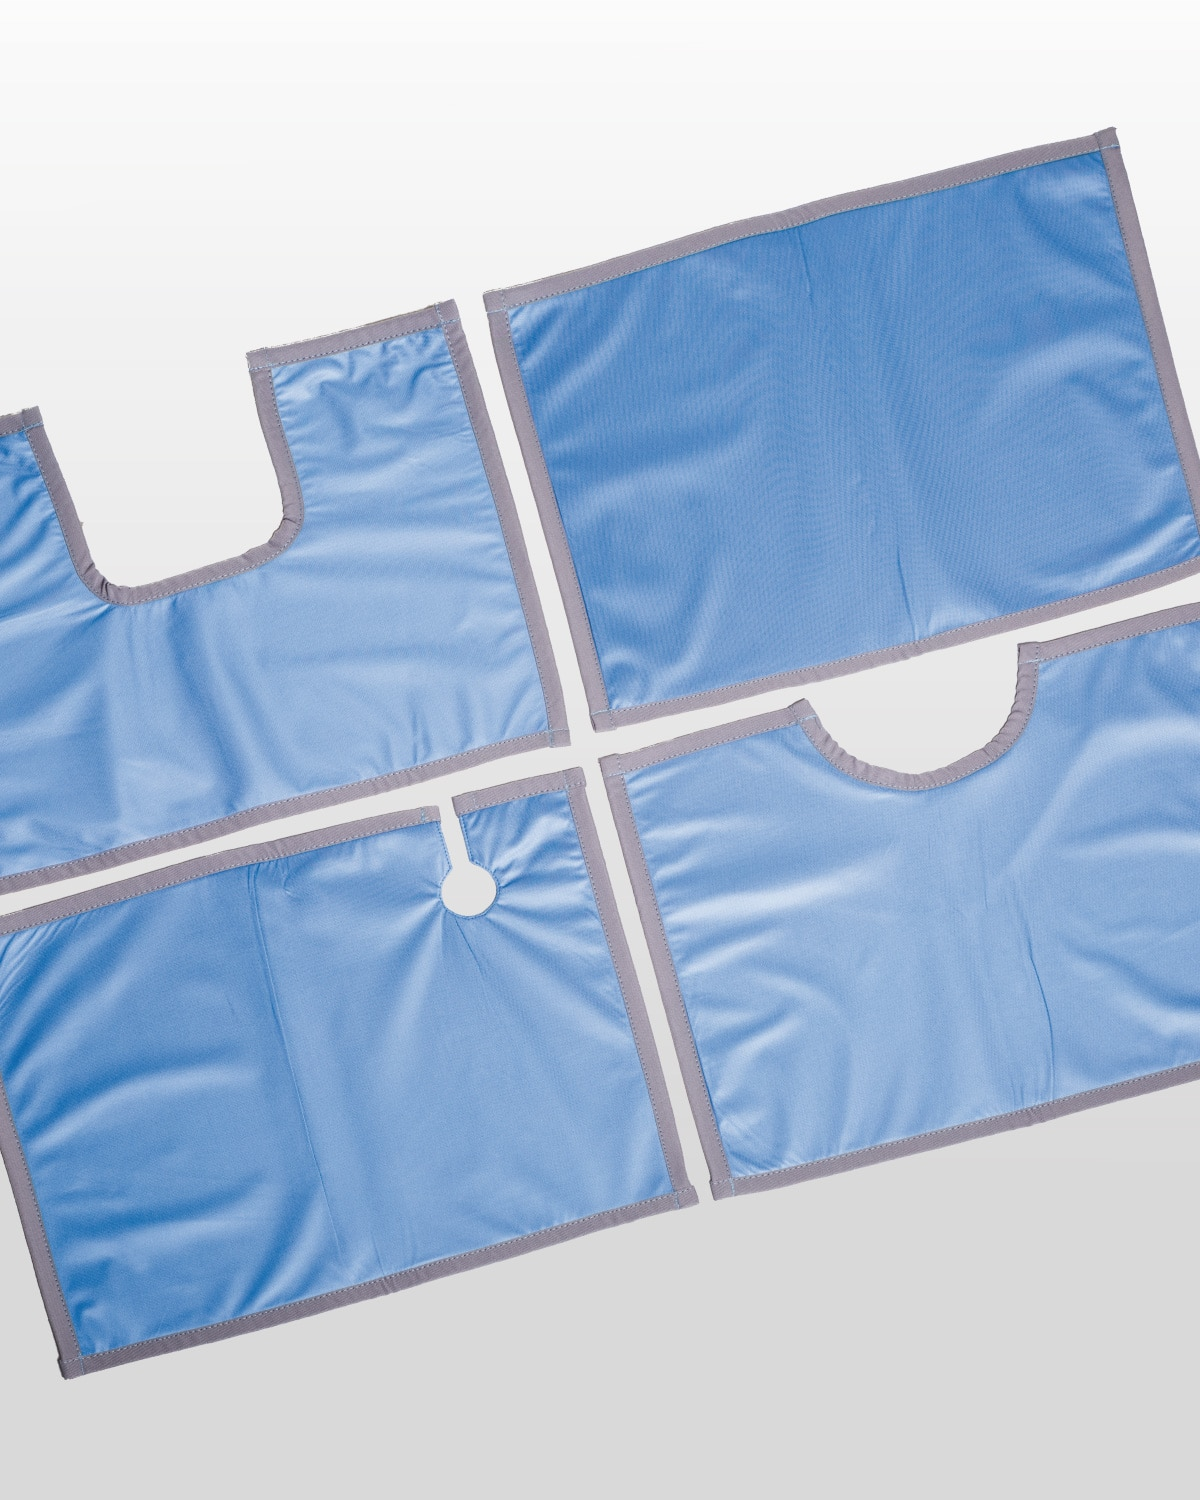 drape of x picture surgical drapes products sterile infection control sheets